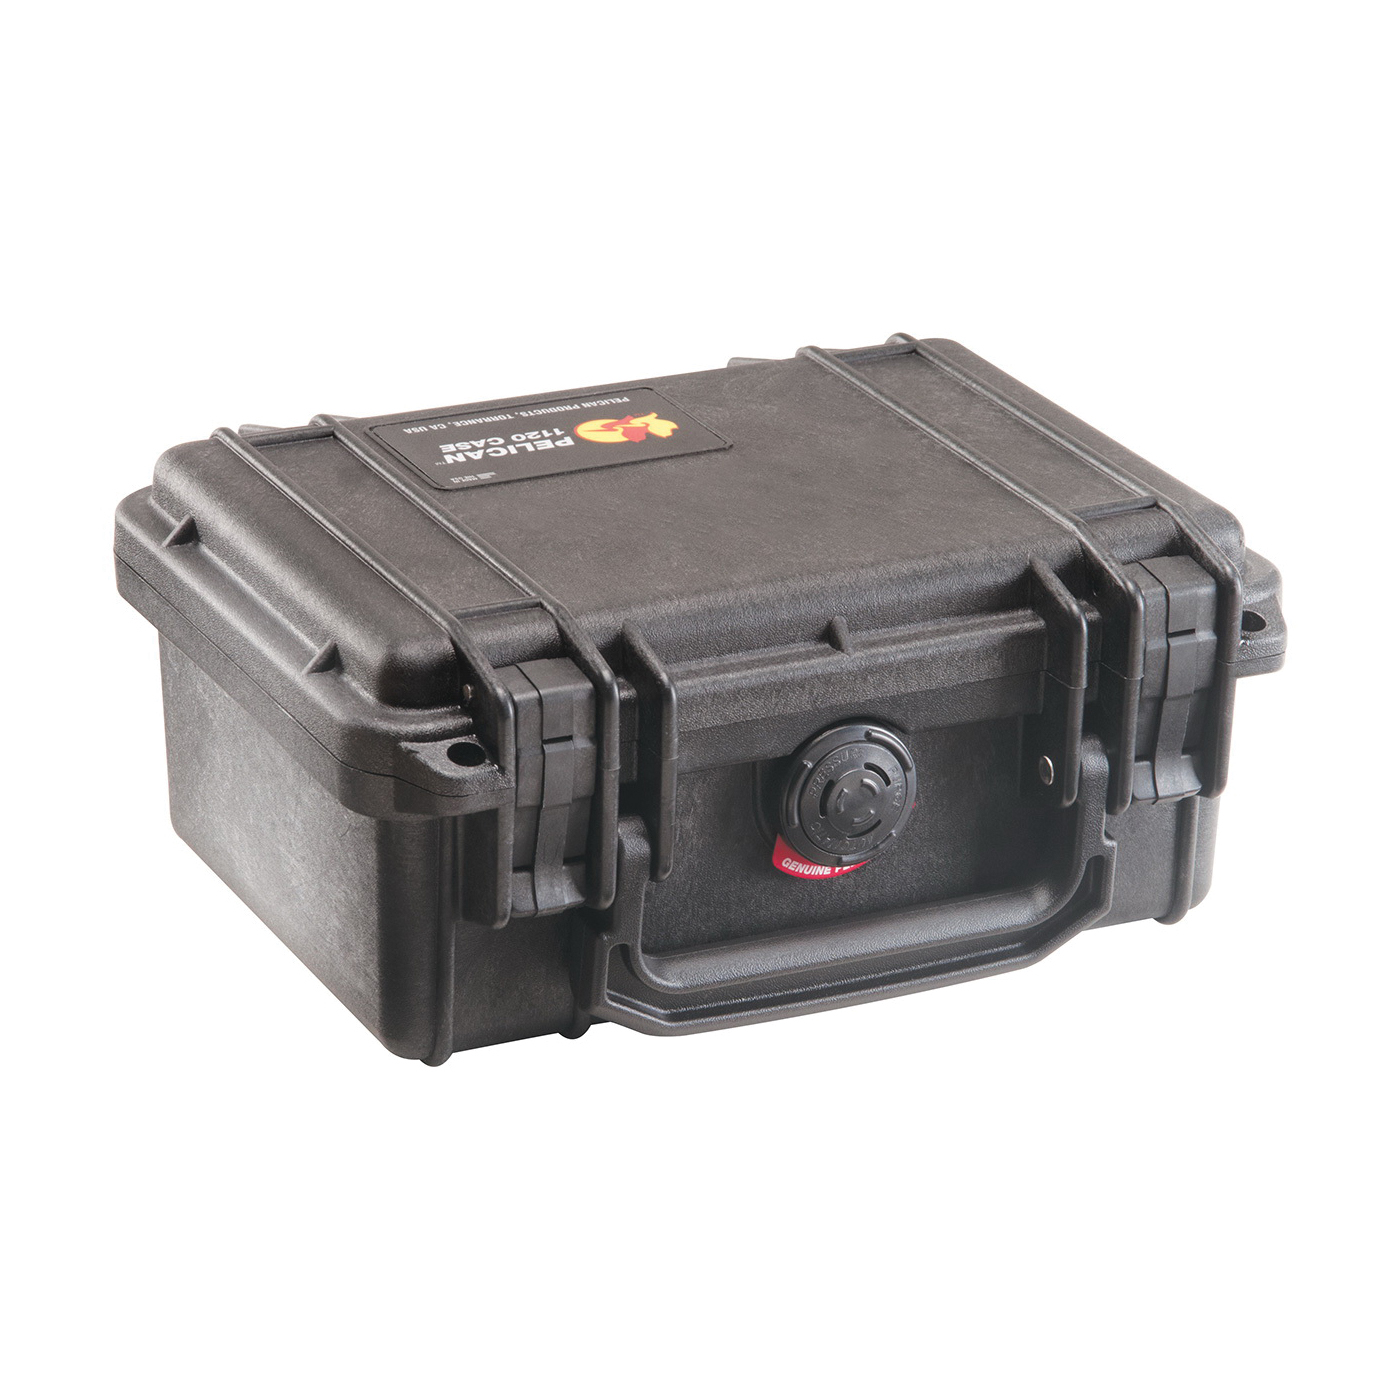 Pelican™ PROTECTOR CASE™ 1060-027-100 Micro Protective Case With Lid Liner and Foam Insert, 8-1/4 in L x 4-1/4 in W x 2-1/4 in H, 0.05 cu-ft, Polycarbonate